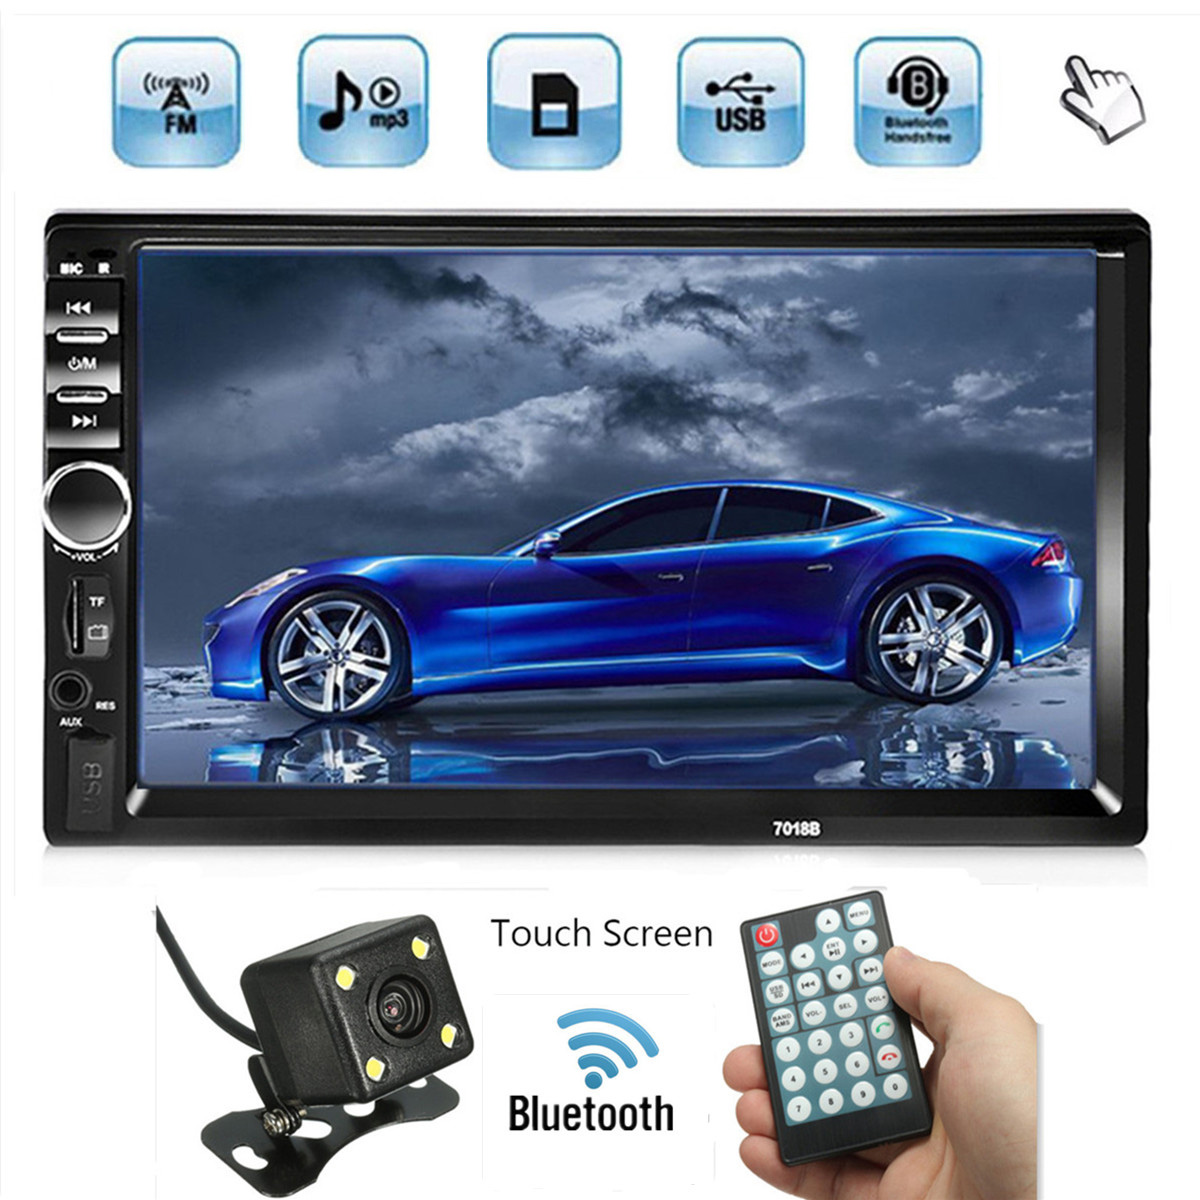 7'' Touch Screen 2 Din Car Radio Bluetooth 2 Din Auto Audio Player Stereo Bluetooth MP5 Support FM/MP5/USB/AUX Rear View Camera 7 inch hd 2 din bluetooth car mp5 player stereo audio fm radio touch screen support aux usb tf phone auto rearview camera